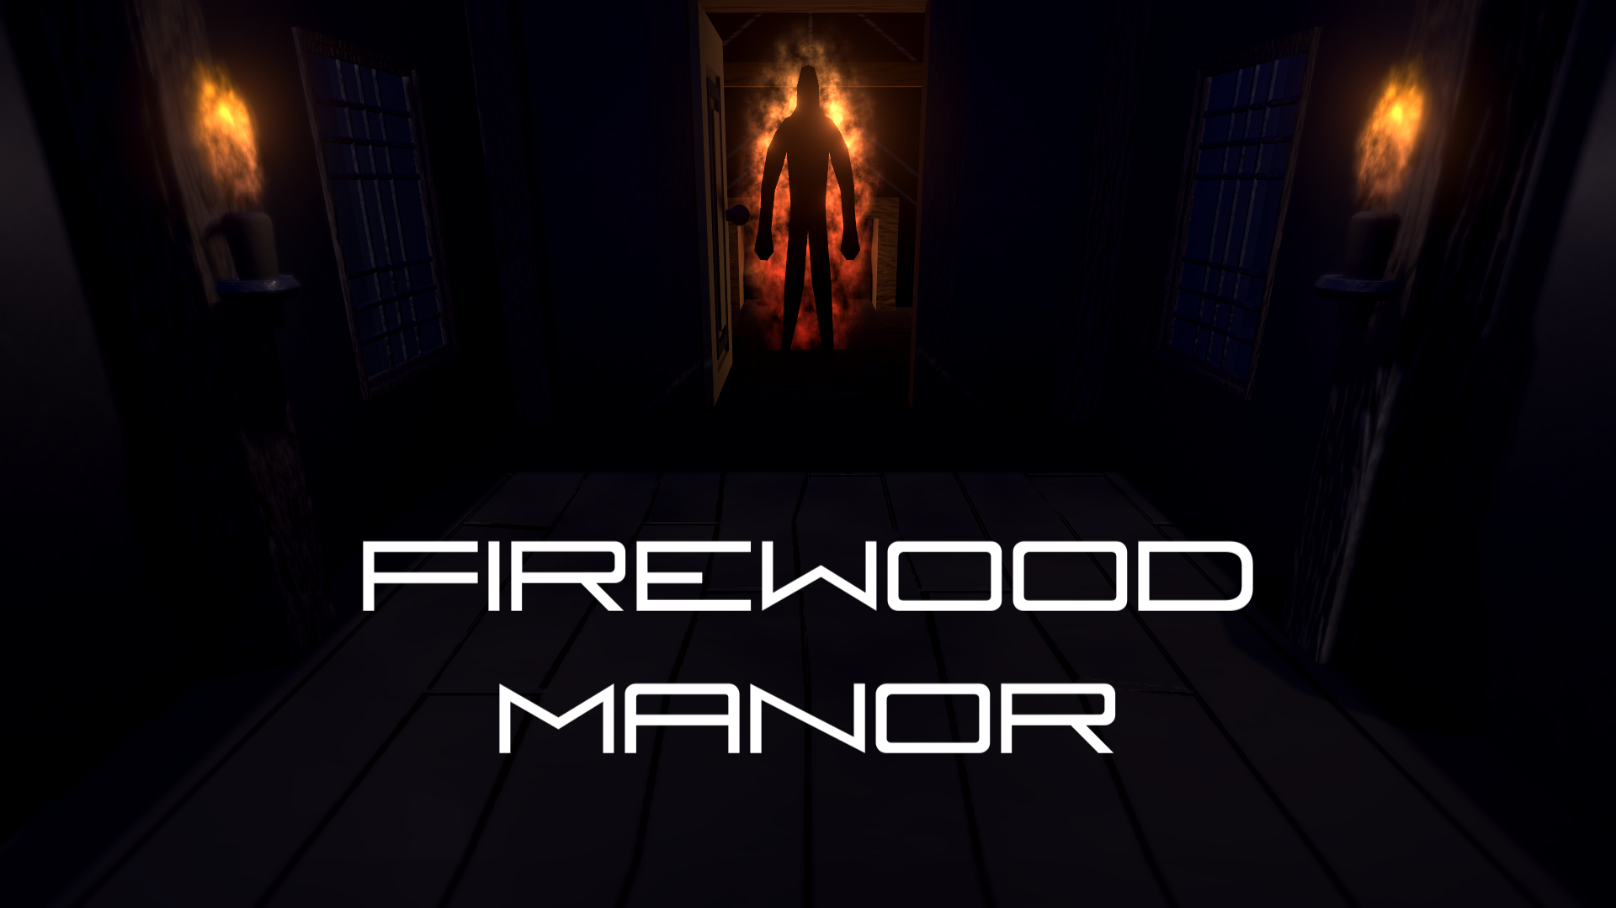 Firewood Manor